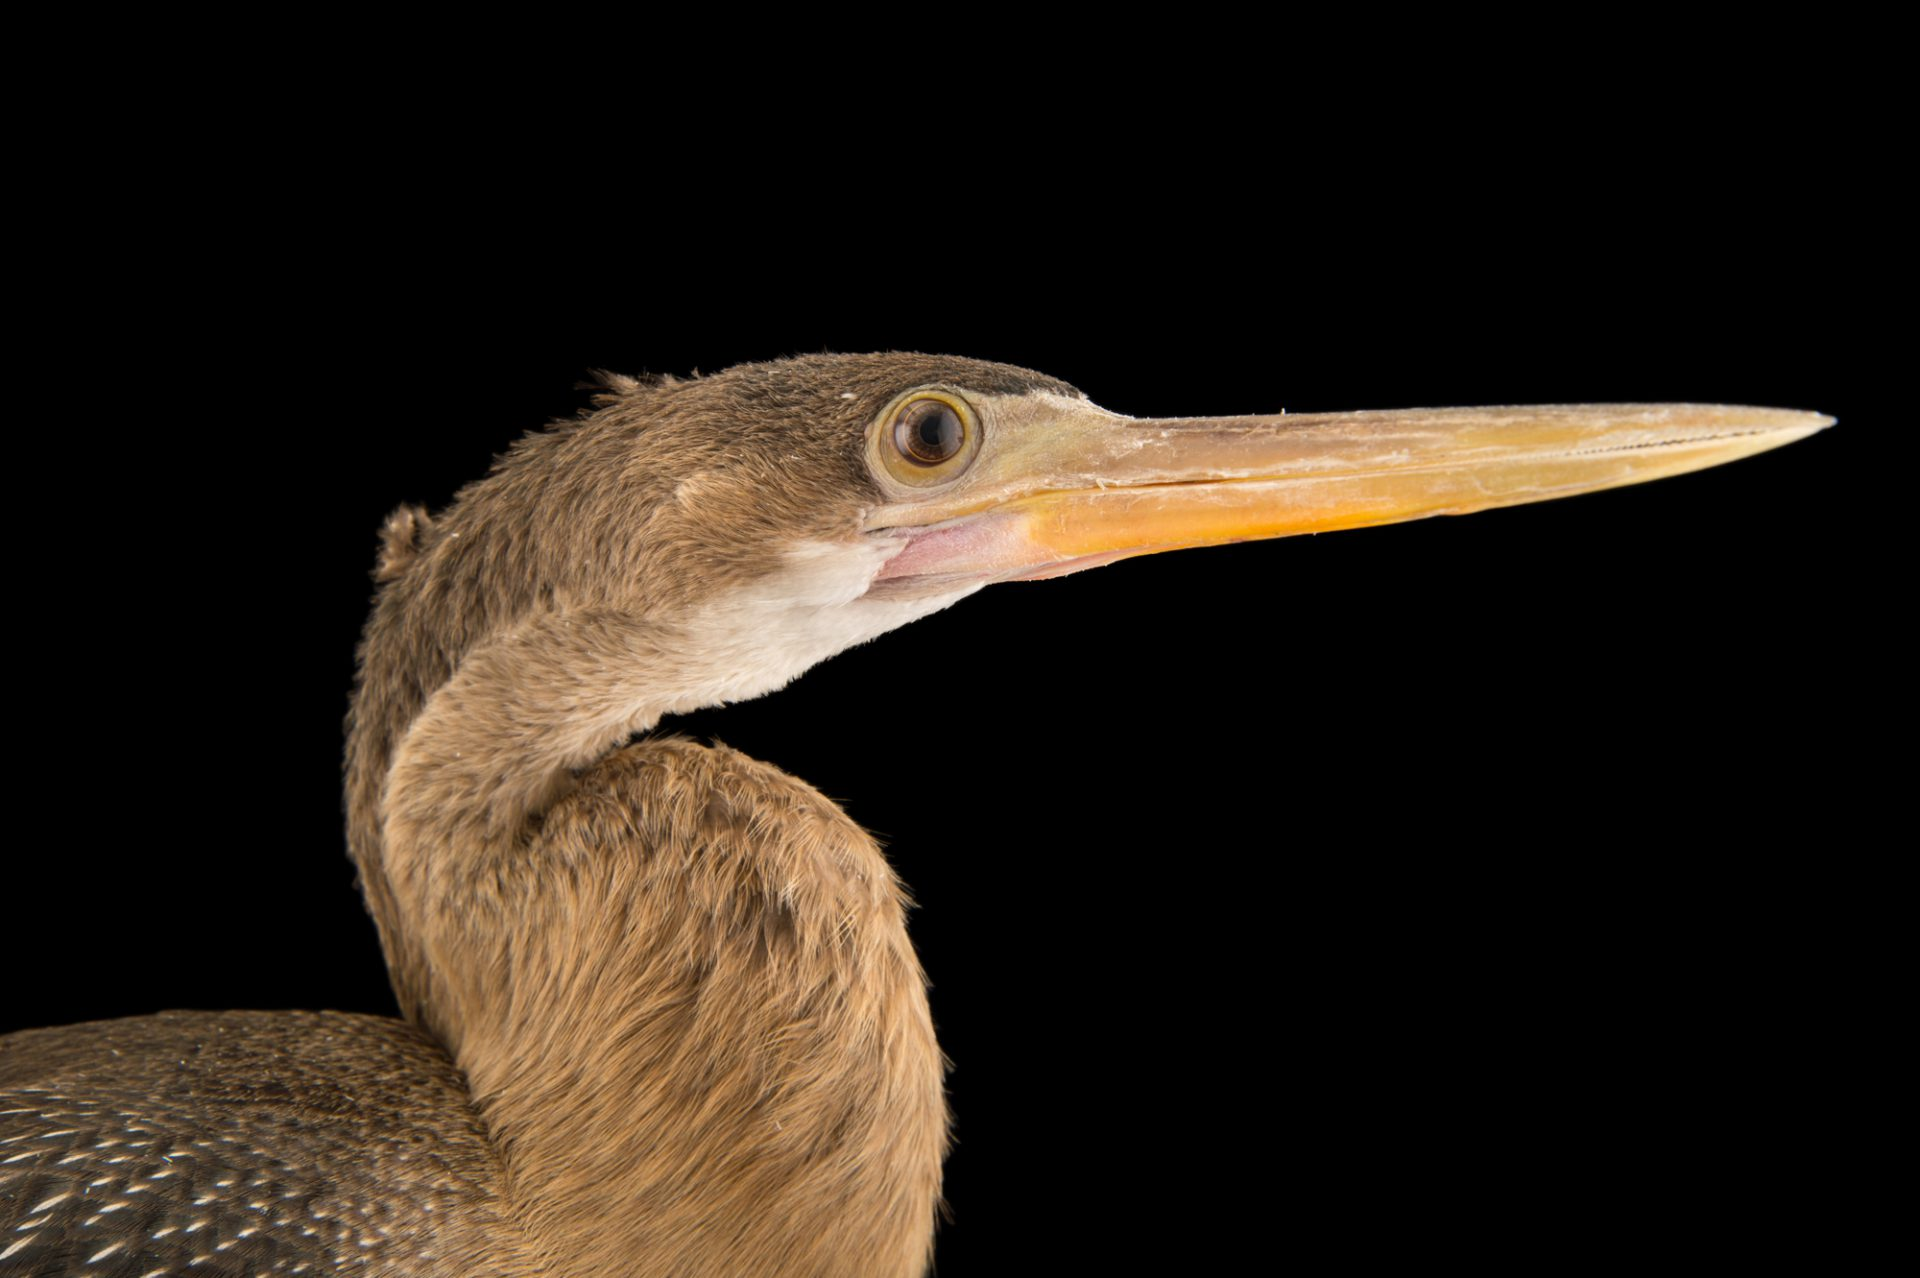 Photo: Anhinga (Anhinga anhinga) at the National Aviary of Colombia (Aviario Nacional de Colombia).